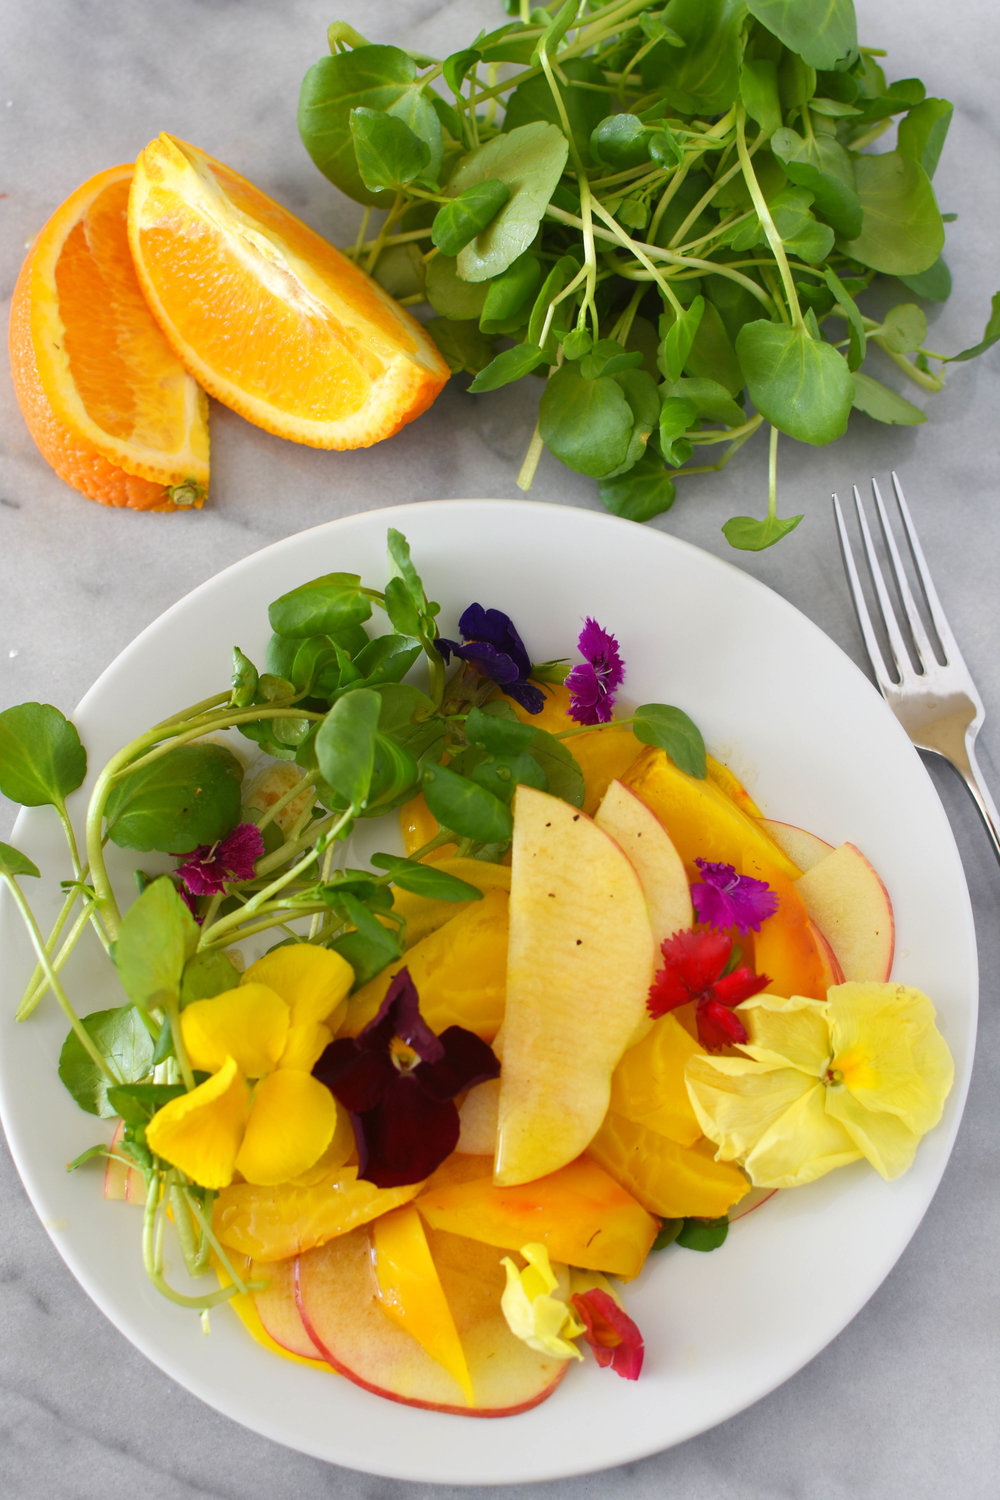 Beet, apple, and watercress salad with a zesty dressing. A wonderful, vegan side salad or main course | Shiny Happy Bright